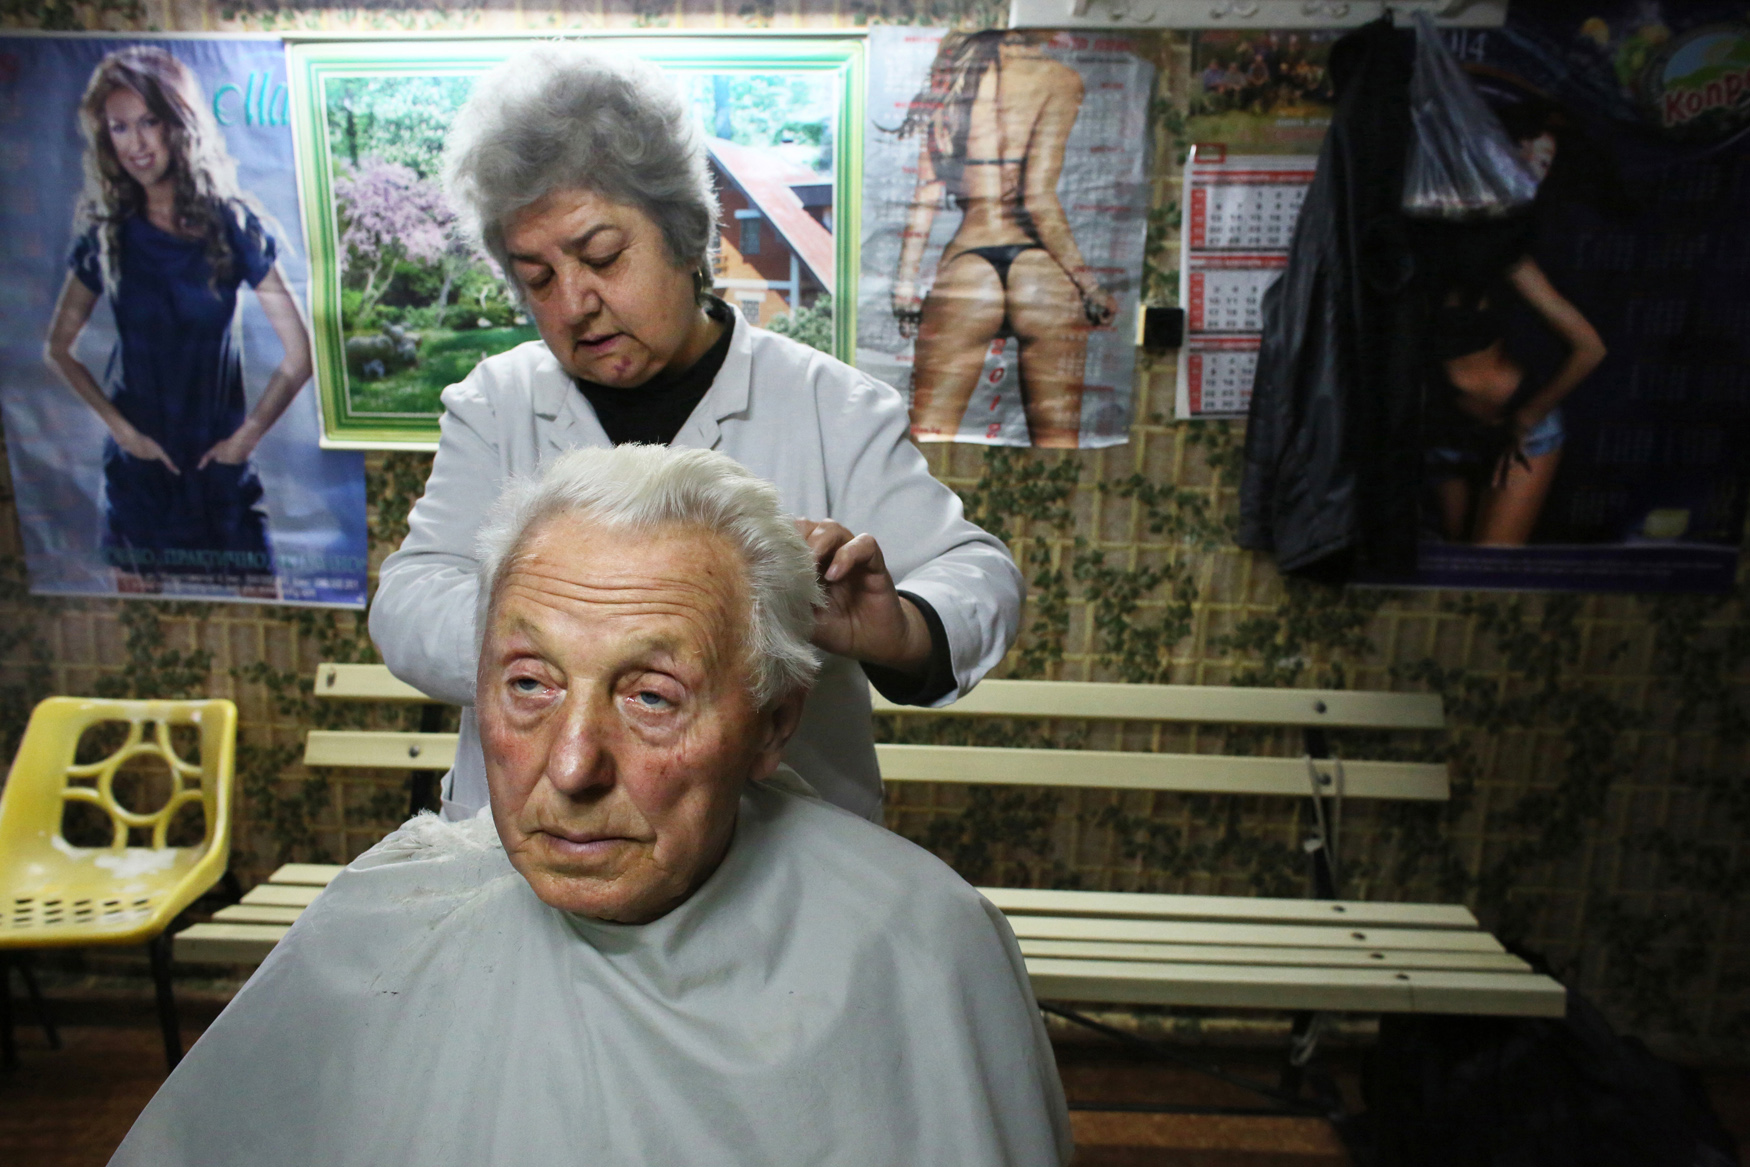 Hair dresser Pavlinka Paskova, 59, cuts the hair of Stanko Petrov Vulchev, 80, in Vidin, Bulgaria, on October 30th, 2014. Paskova  says she has very few customers in this town of waning population: {quote}There's little hope of prosperity for the young here - they've all emigrated.{quote}Bulgaria has the most extreme population decline in the world — much due to post-1989 emigration, high death rates and low birth rates. There are so few people of child-bearing age in the nation that population statistics project a 30-percent decrease by 2060, from 7.2 million to just over 5 million. In other words, Bulgaria's population declines by 164 people a day, or 60,000 people a year — 60 percent of them aged over 65.